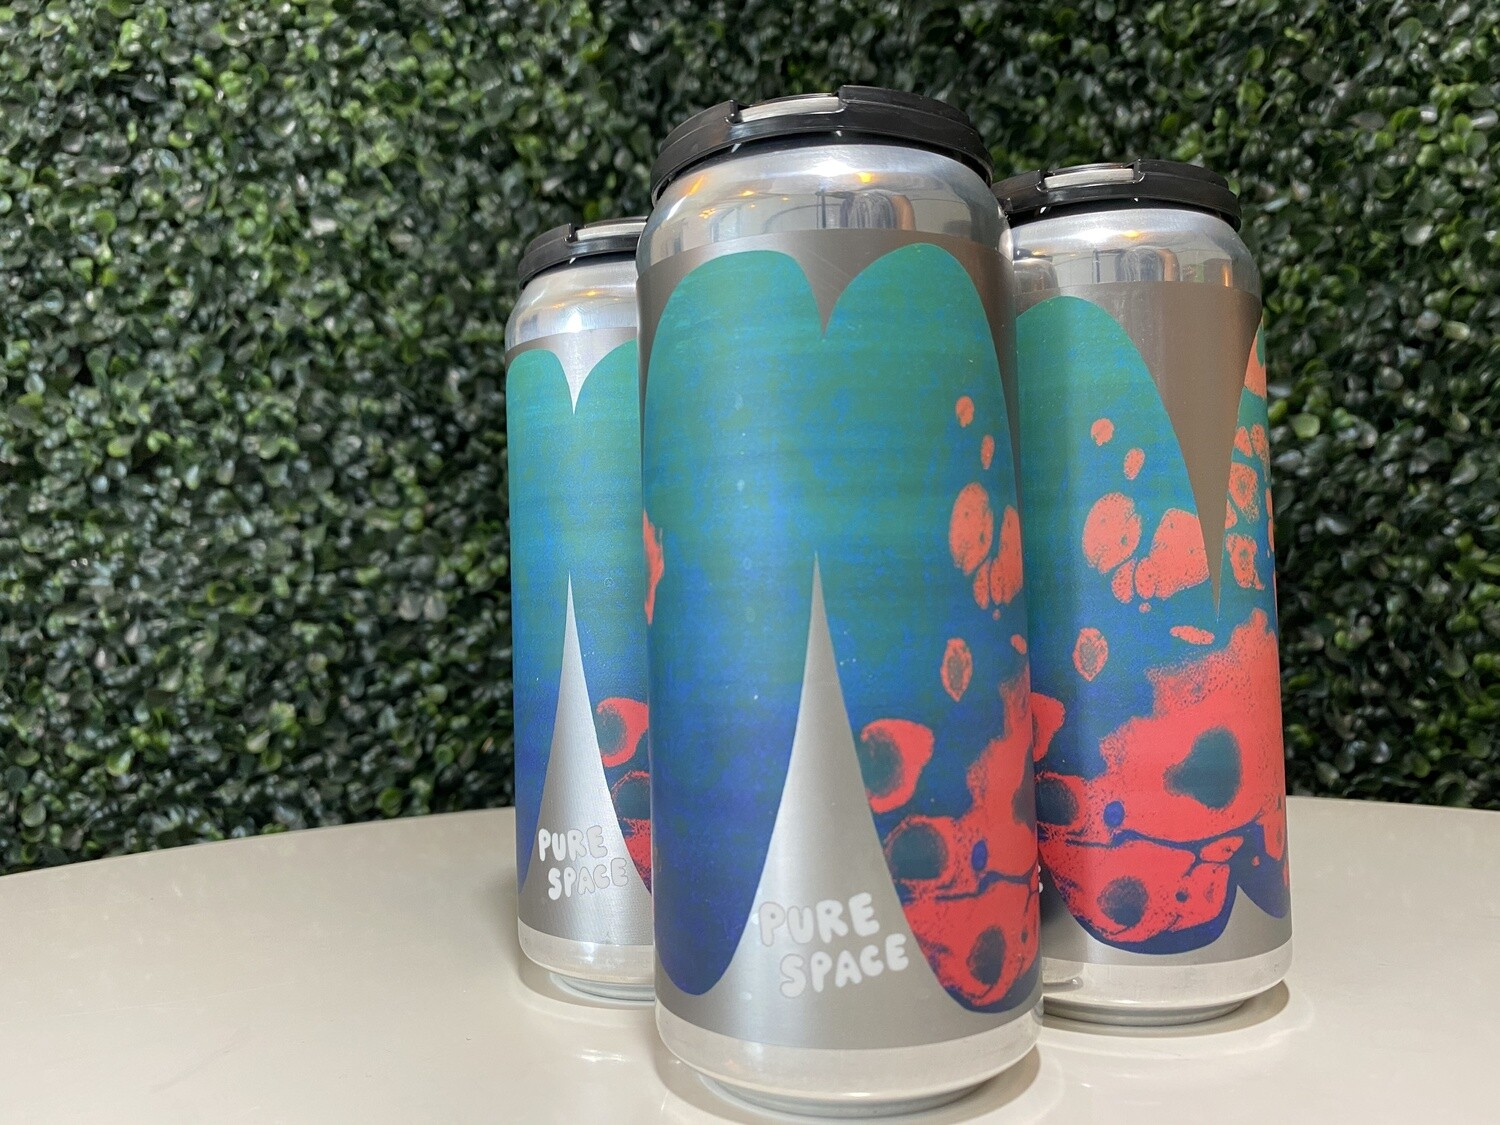 Two Tides - Pure Space - DIPA 8% ABV - 16oz Can